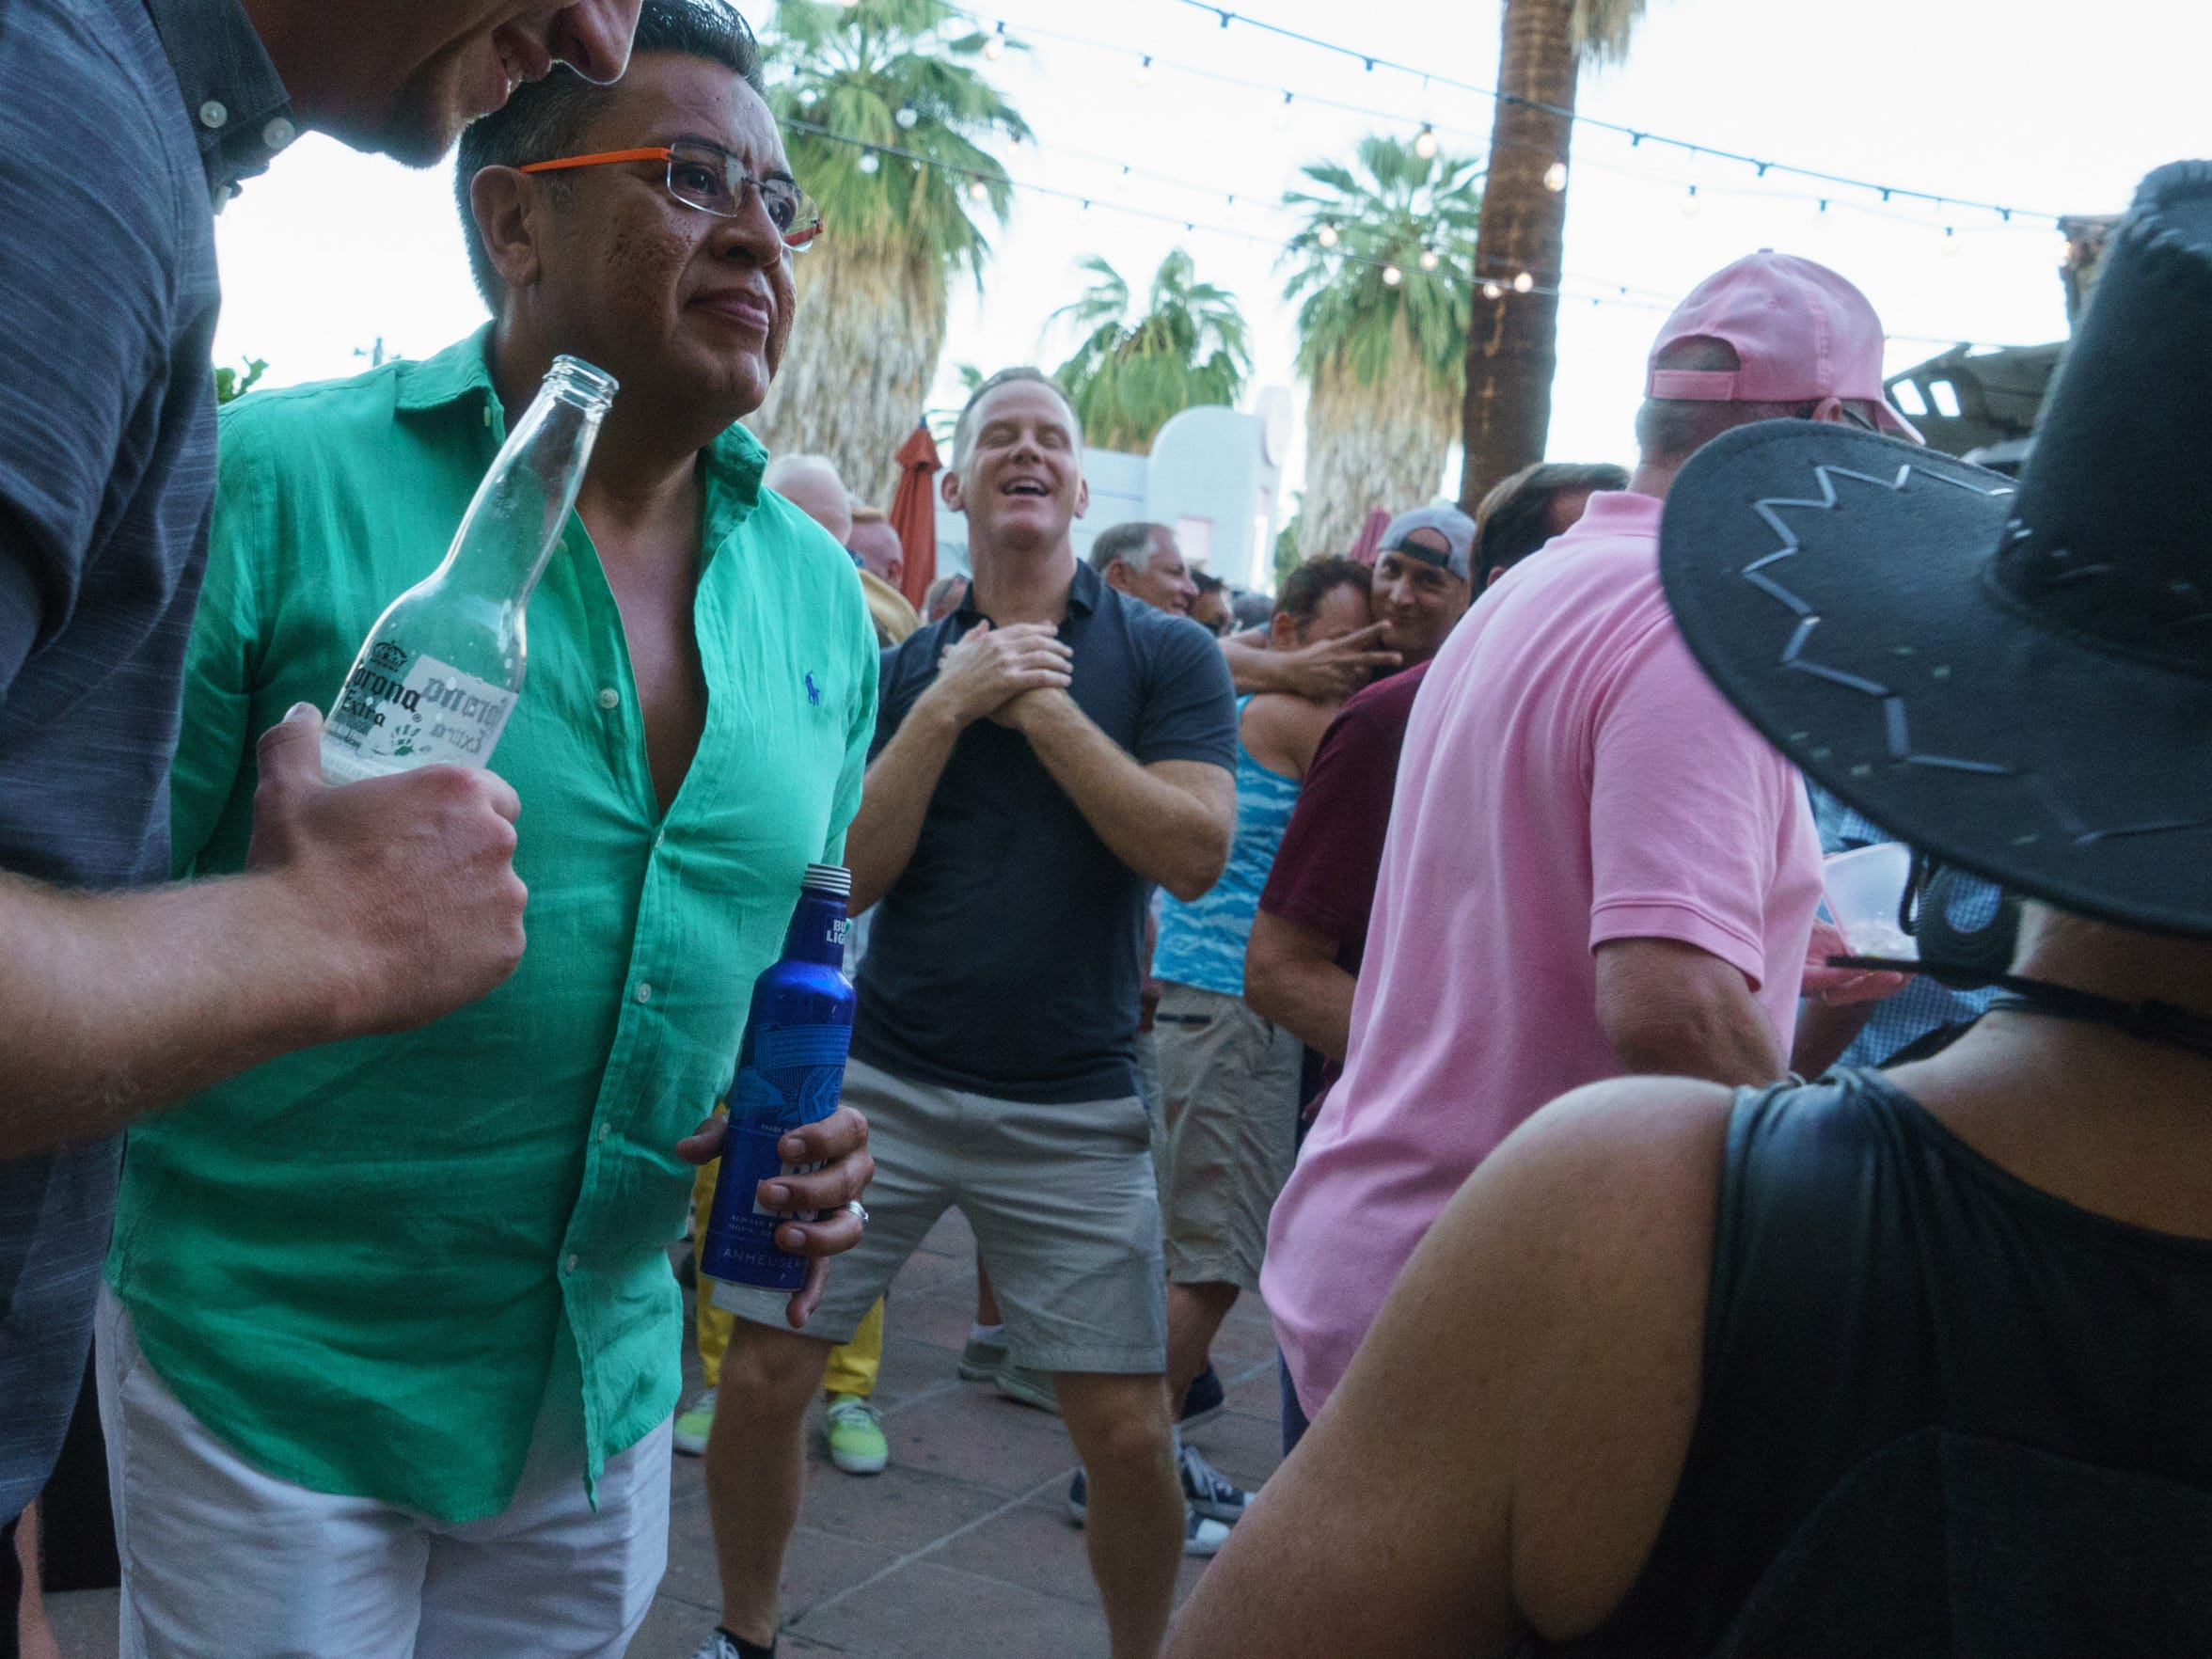 Men dance and mingle at Oscar's weekly tea dance party in downtown Palm Springs on Sunday, Oct. 16.